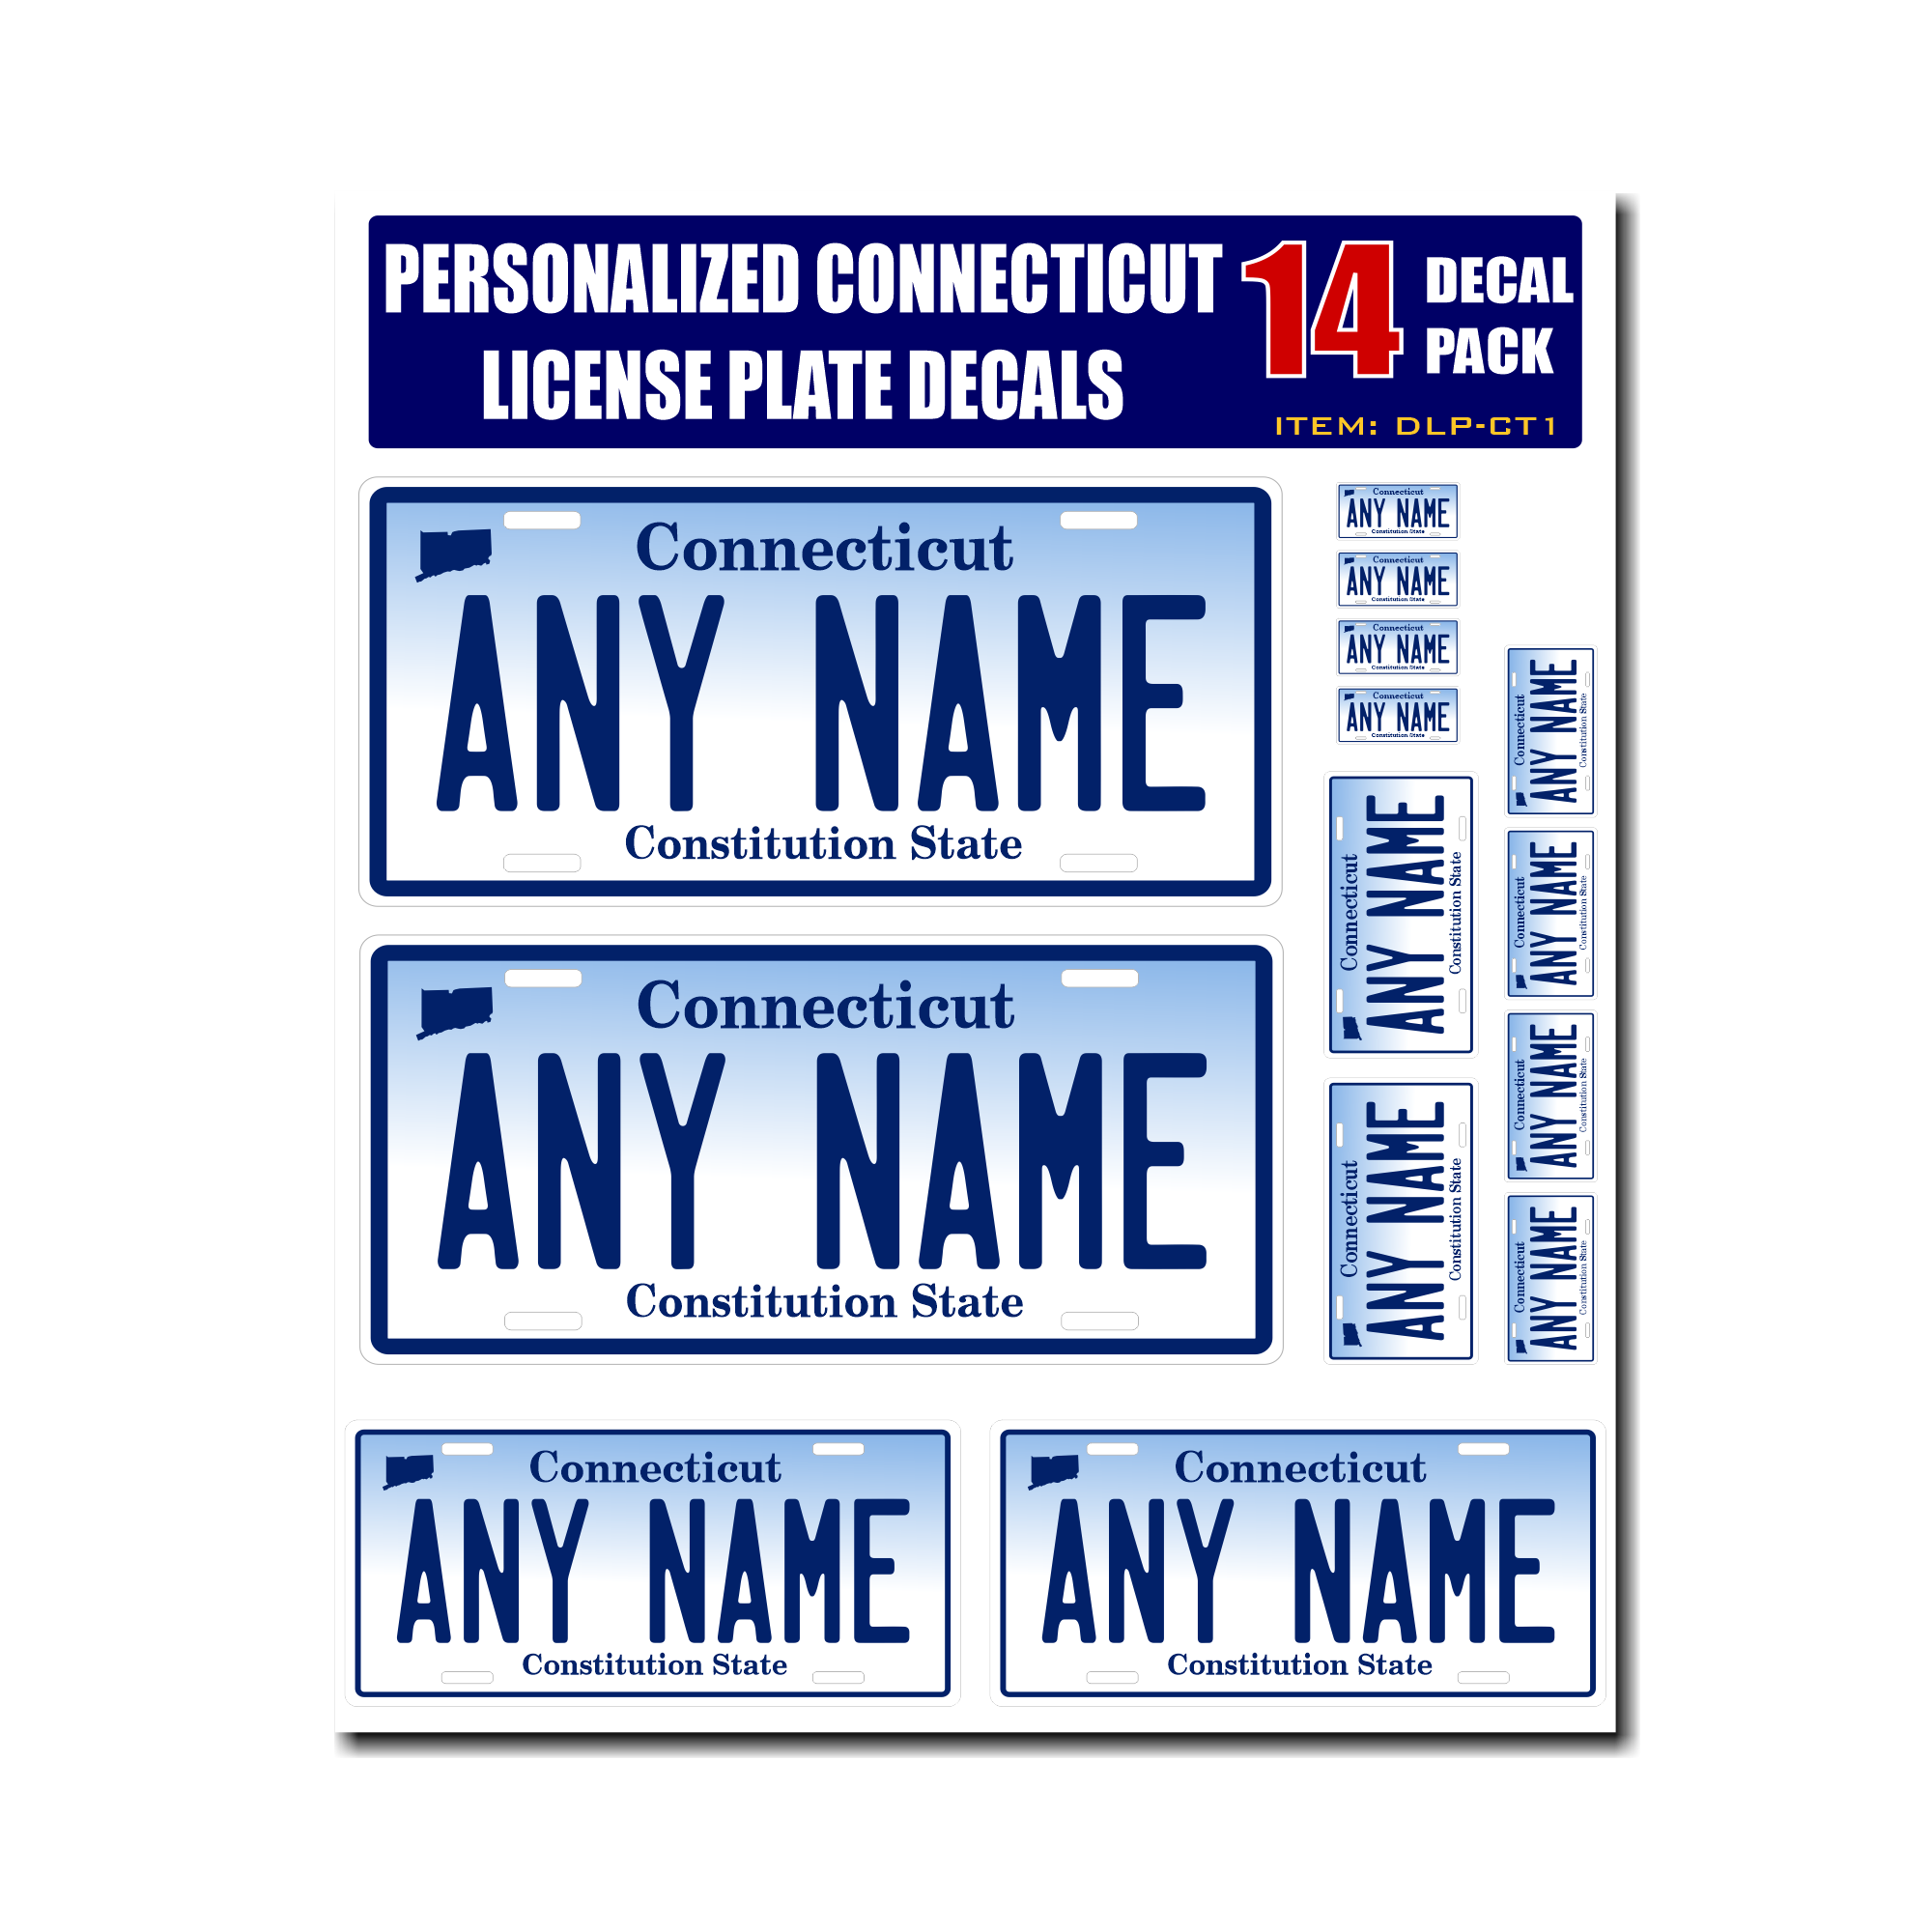 Personalized Connecticut License Plate Decals - Stickers Version 1